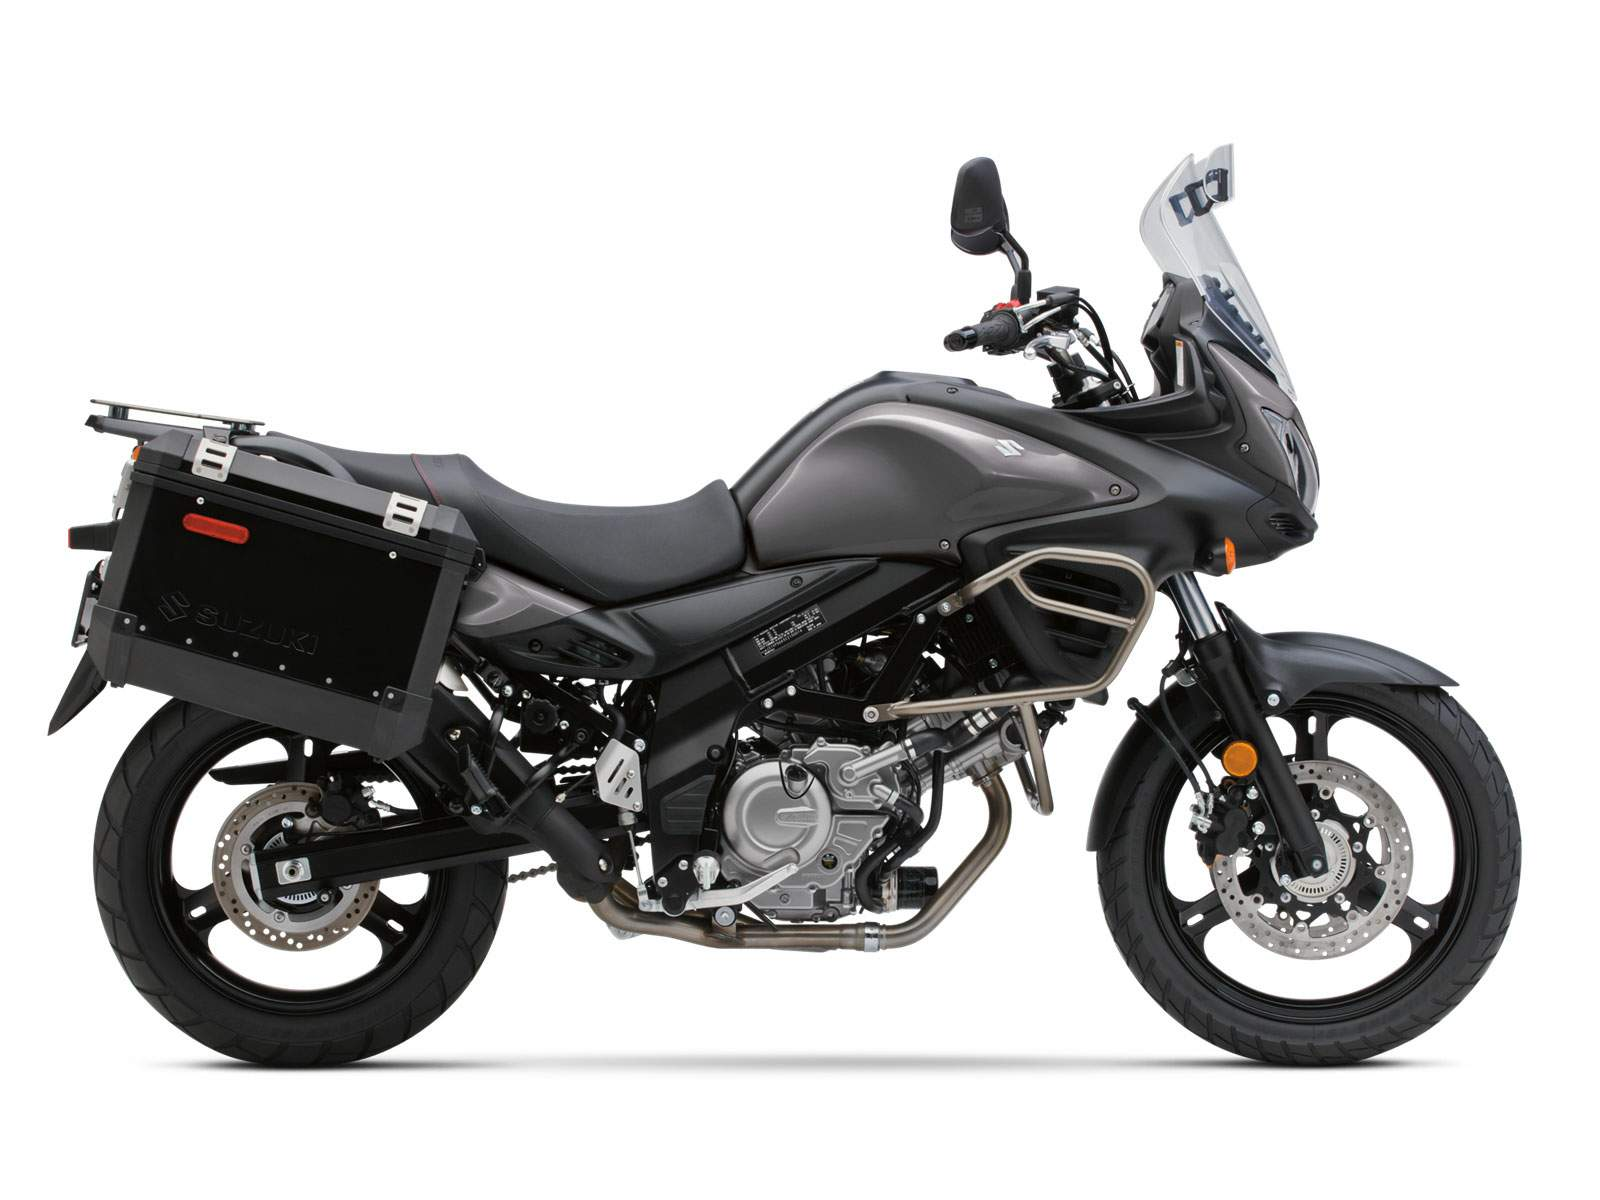 Мотоцикл Suzuki DL 650 V-Strom Adventure 2012